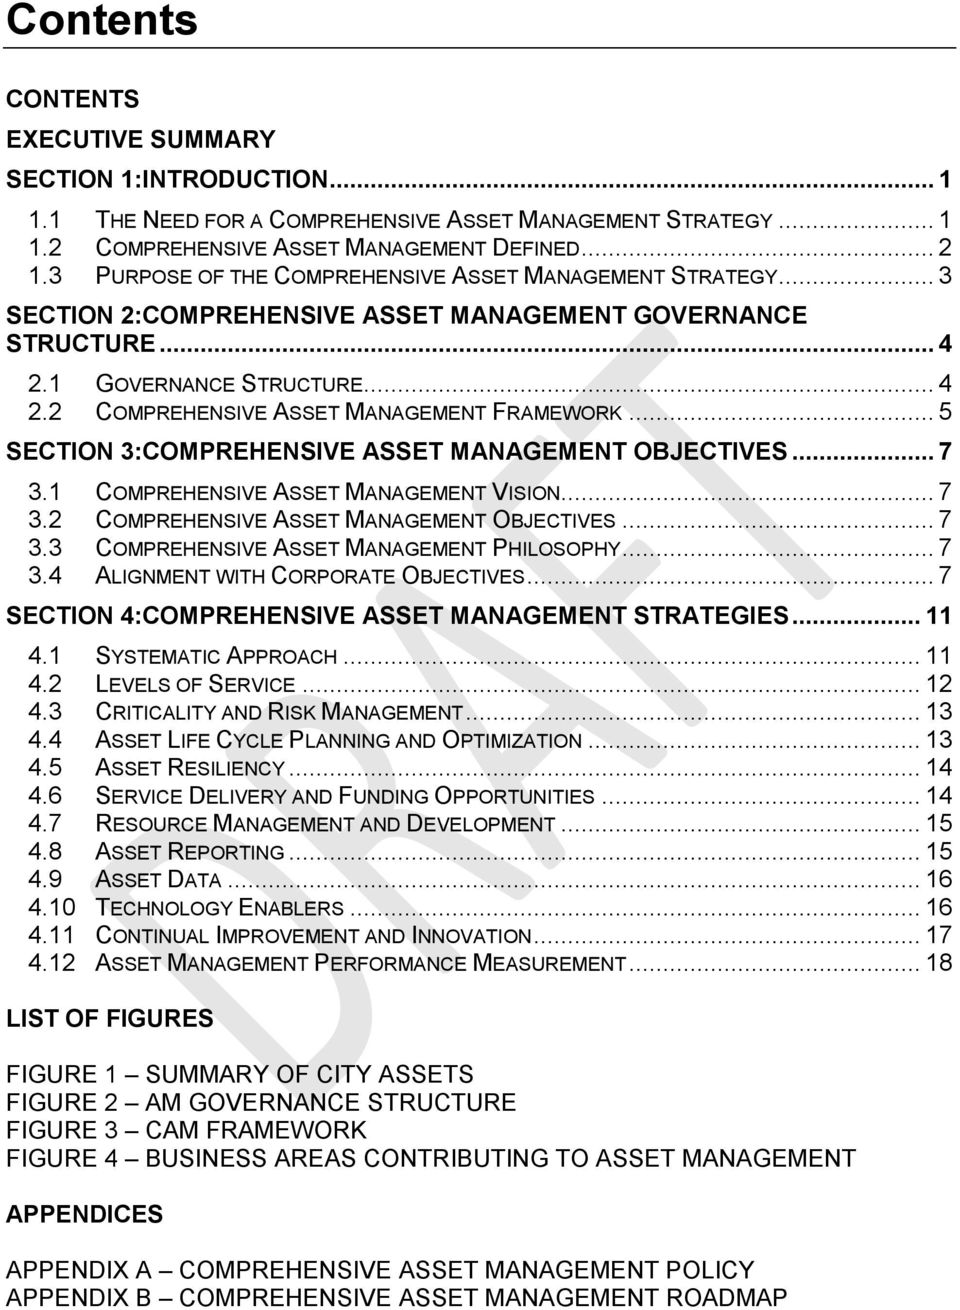 .. 5 SECTION 3:COMPREHENSIVE ASSET MANAGEMENT OBJECTIVES... 7 3.1 COMPREHENSIVE ASSET MANAGEMENT VISION... 7 3.2 COMPREHENSIVE ASSET MANAGEMENT OBJECTIVES... 7 3.3 COMPREHENSIVE ASSET MANAGEMENT PHILOSOPHY.